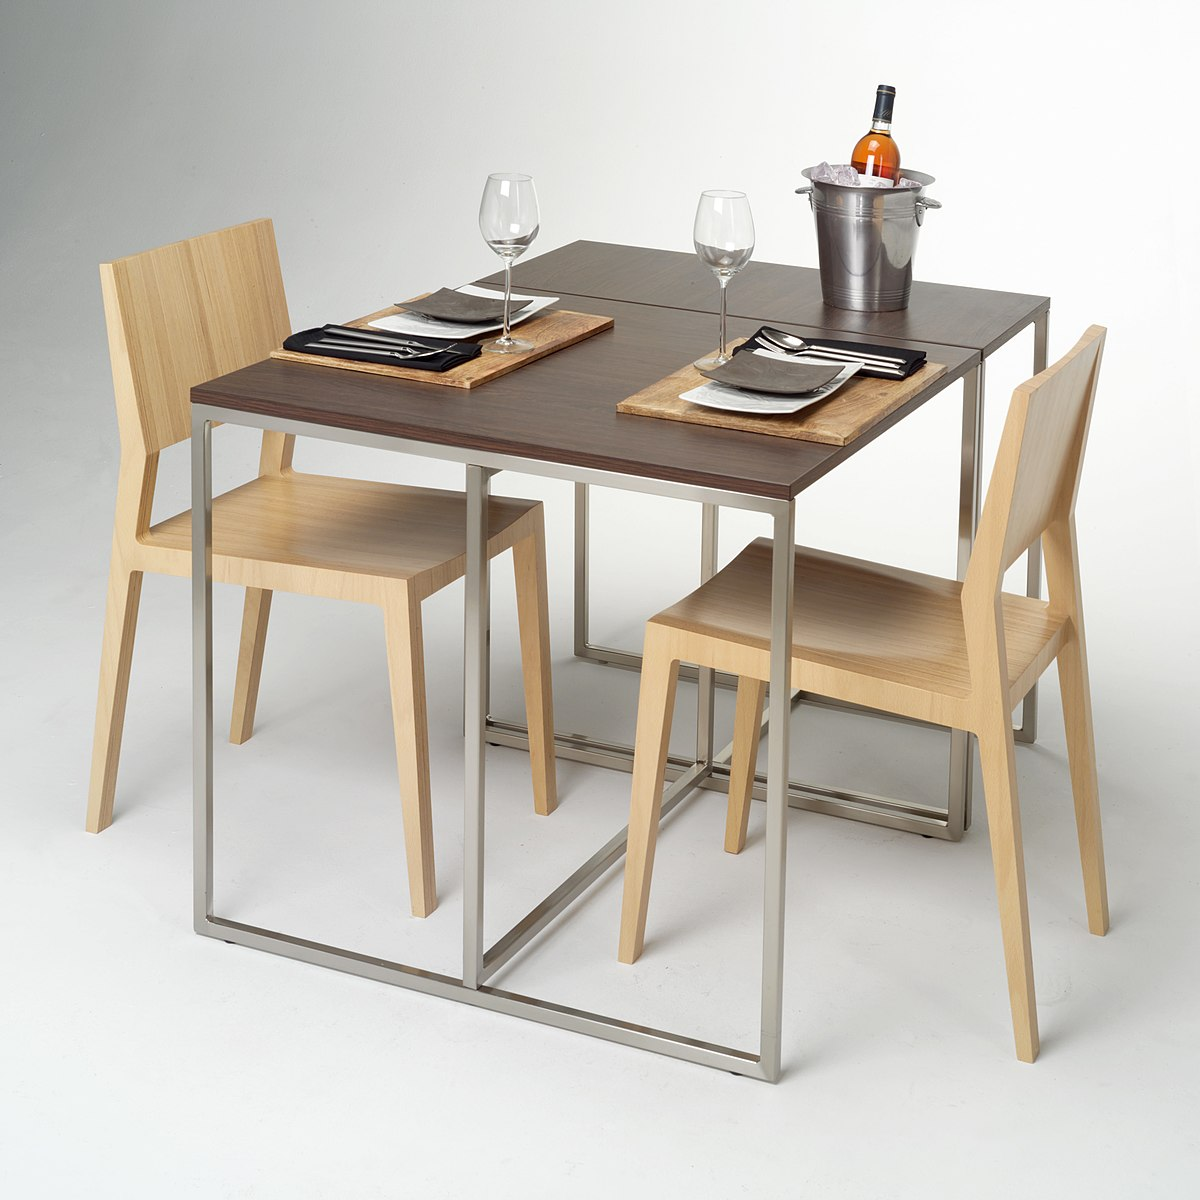 Furniture wikipedia for Small dining set for 2